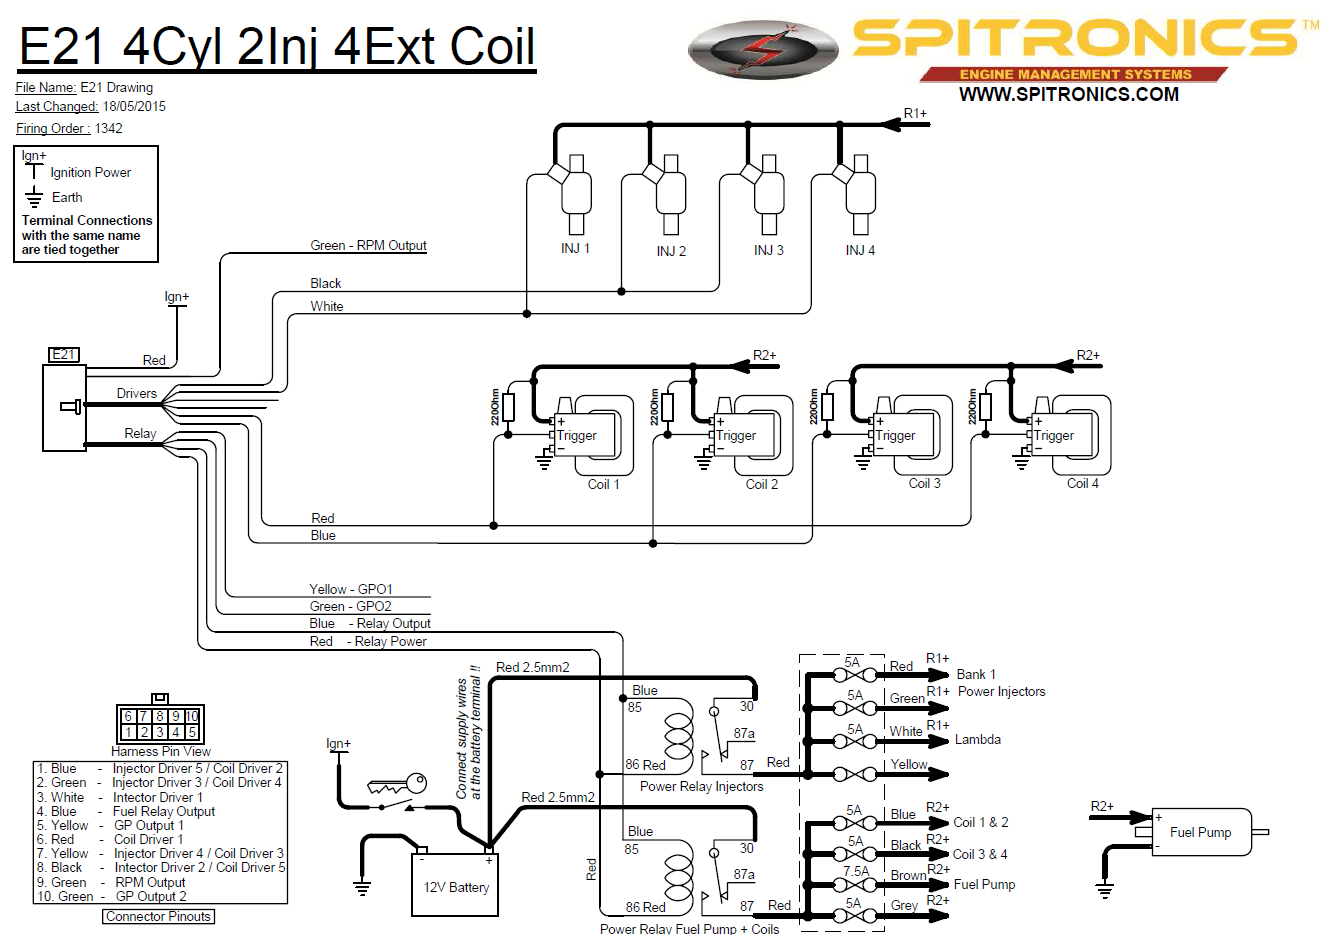 21333743cef06dec523e6eb31bb3f7fcacbf2761 tdc signal page 4 gotech mfi wiring diagram at virtualis.co